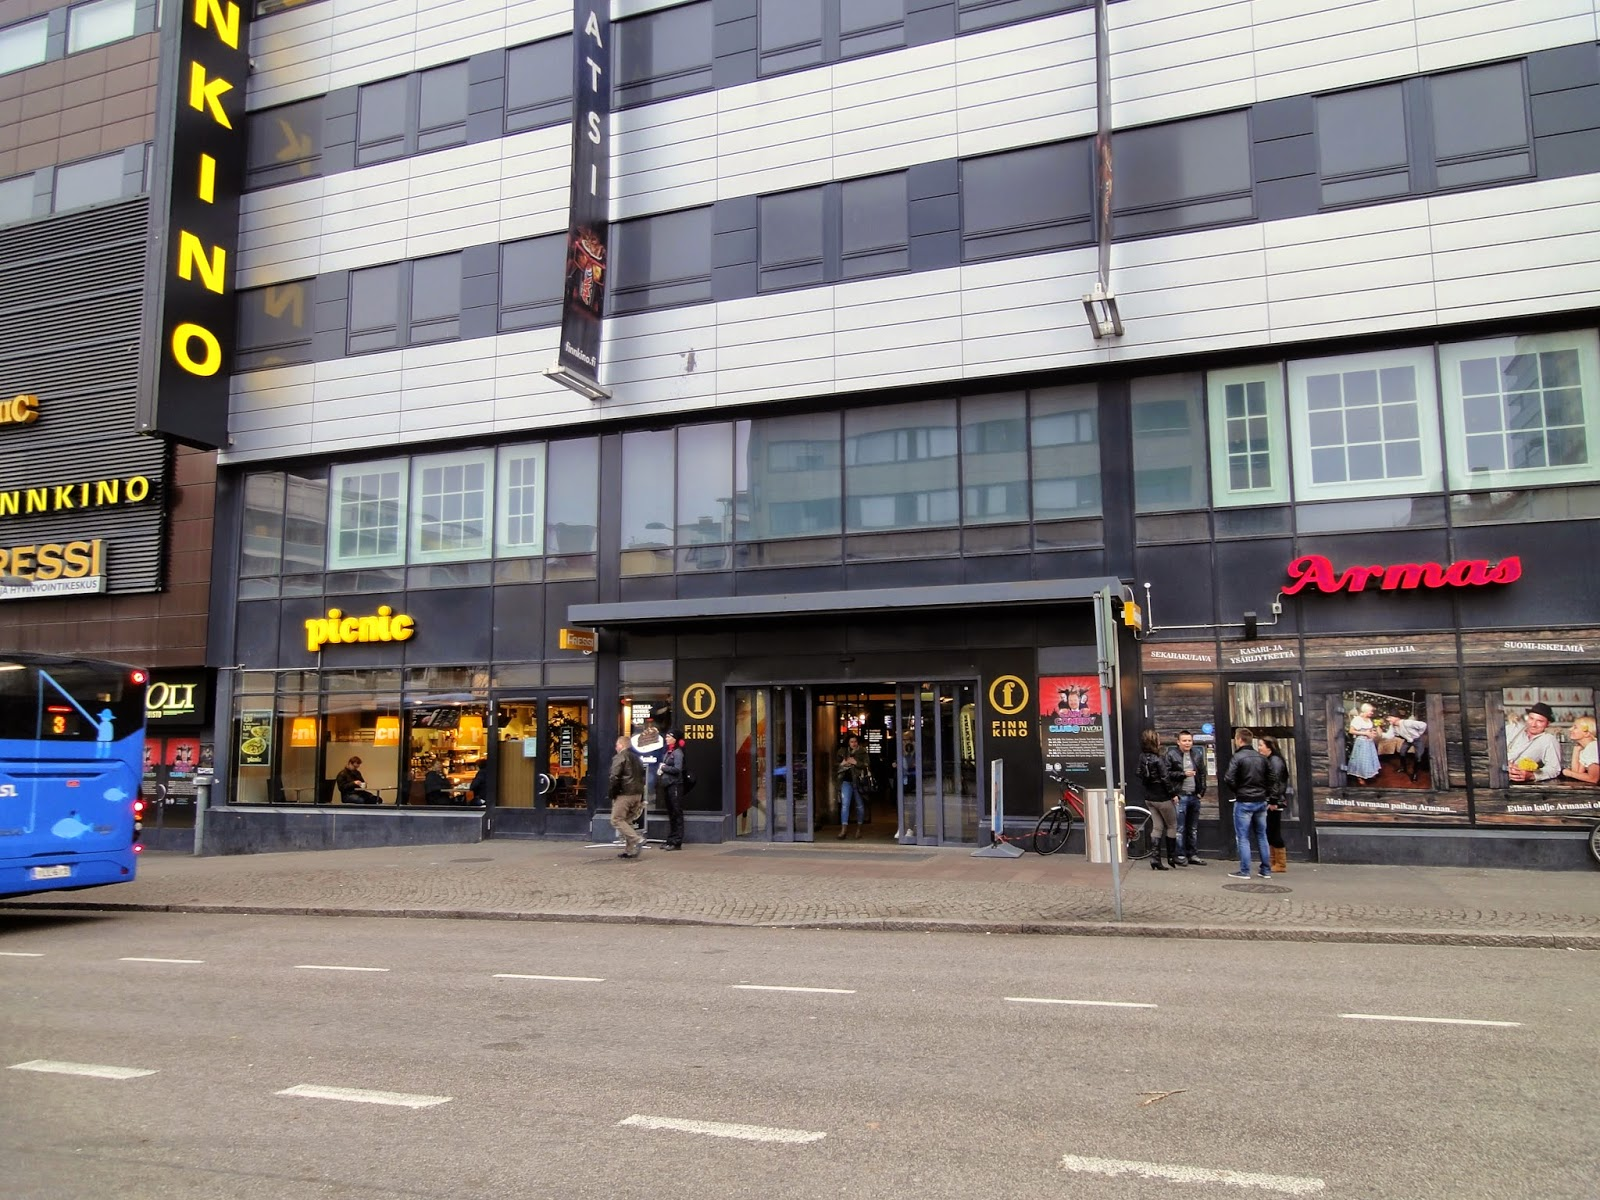 where to meet finnkino lahti